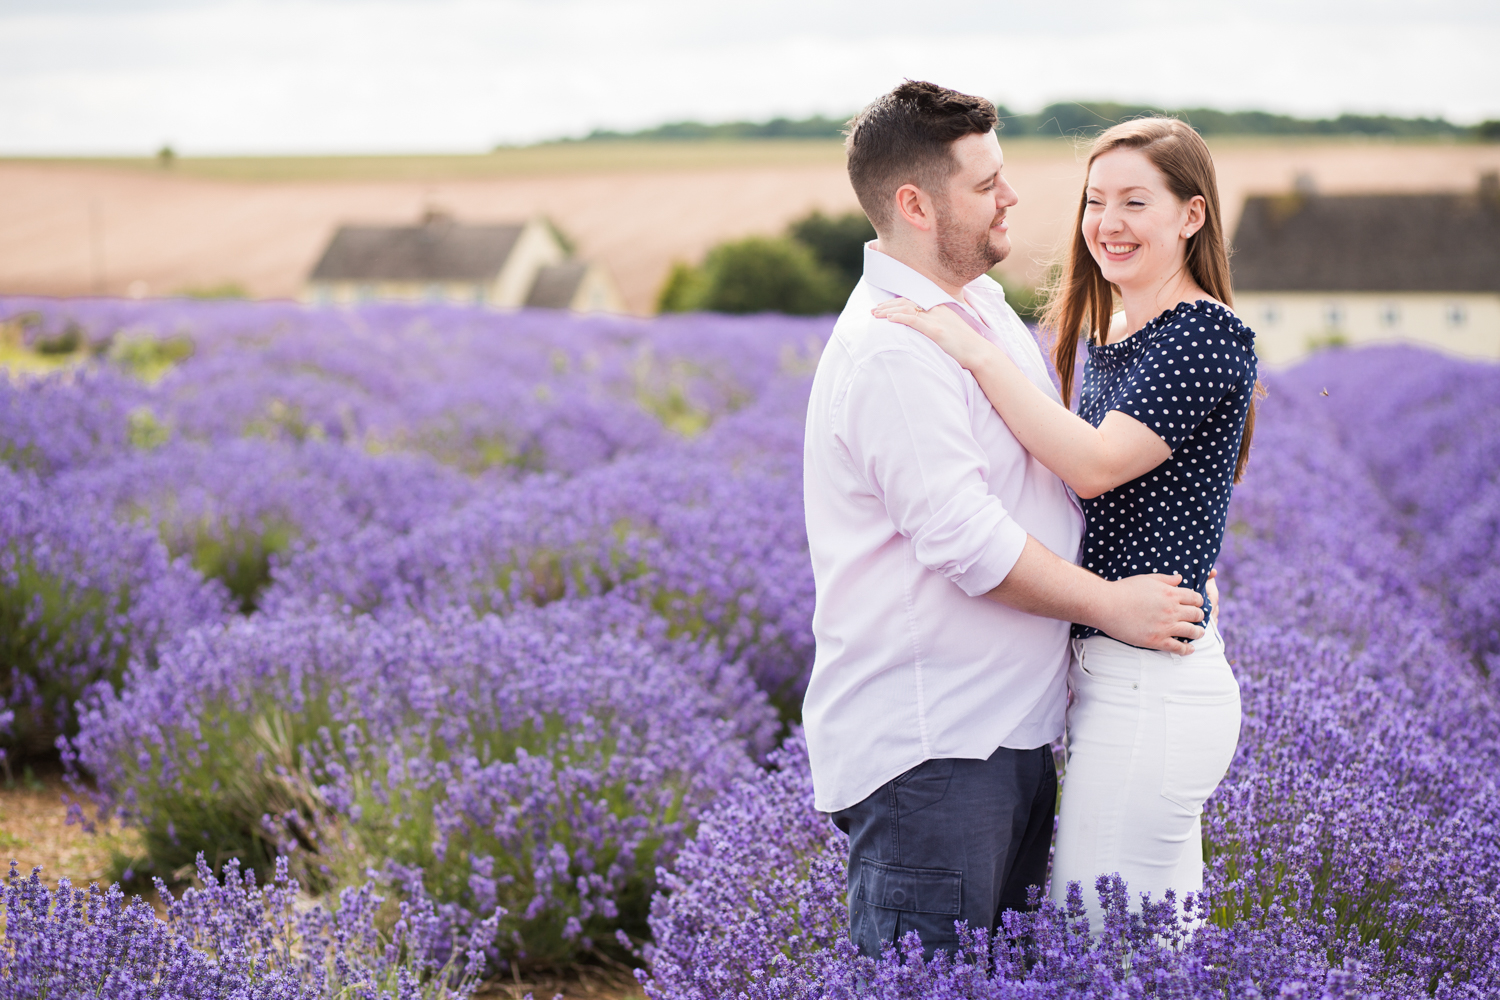 Sophie-Evans-Photograpy-Cotswold-Lavander-Engagement-shoot-Cotswold-wedding-photographer-33.jpg